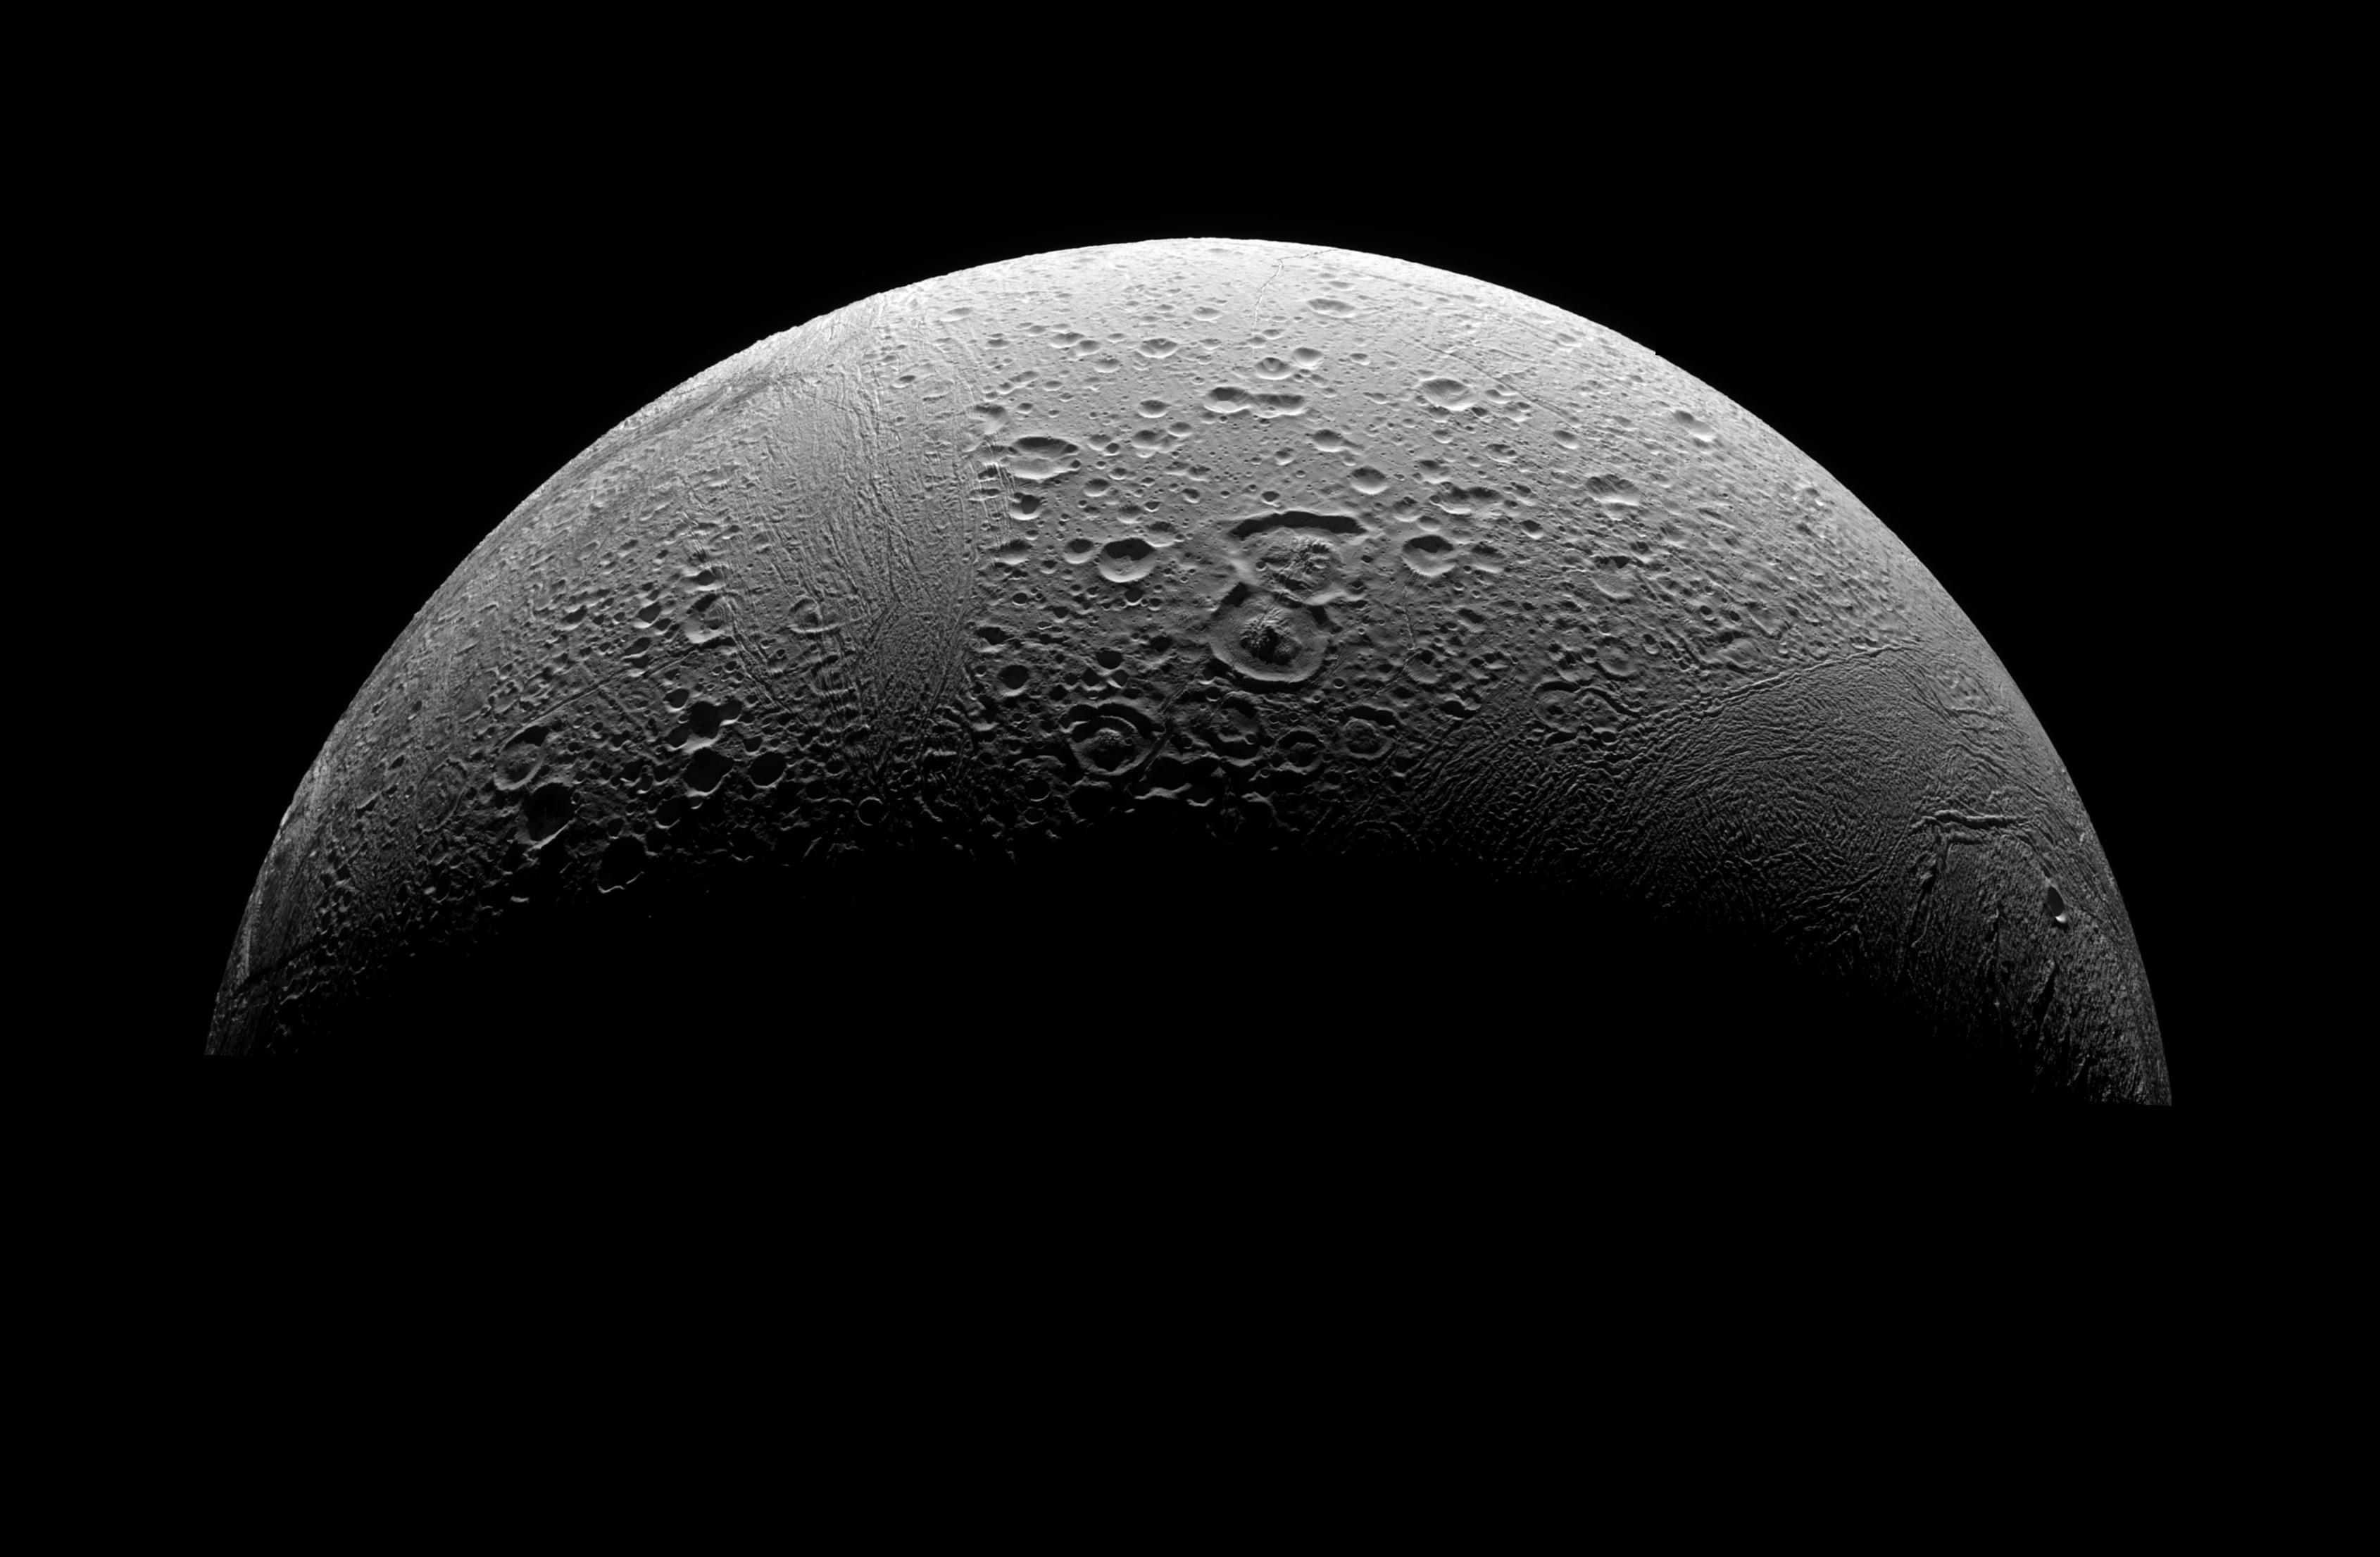 moon Enceladus HD Wallpaper